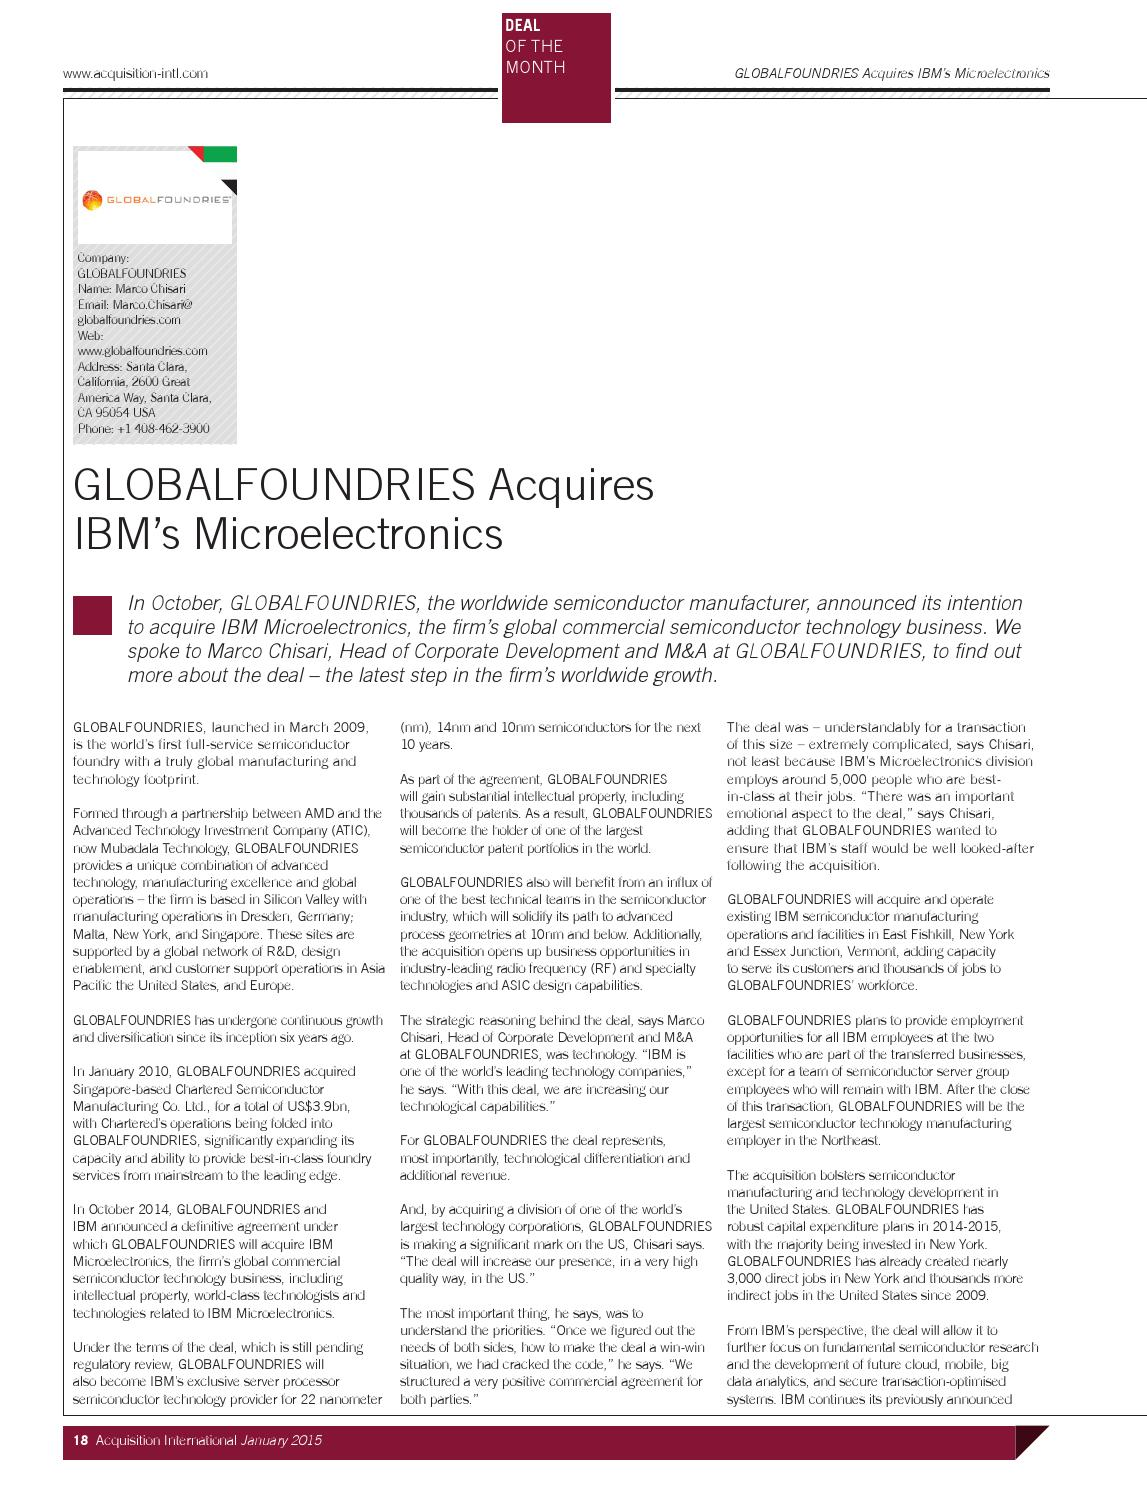 Acquisition International January 2015 by AI Global Media